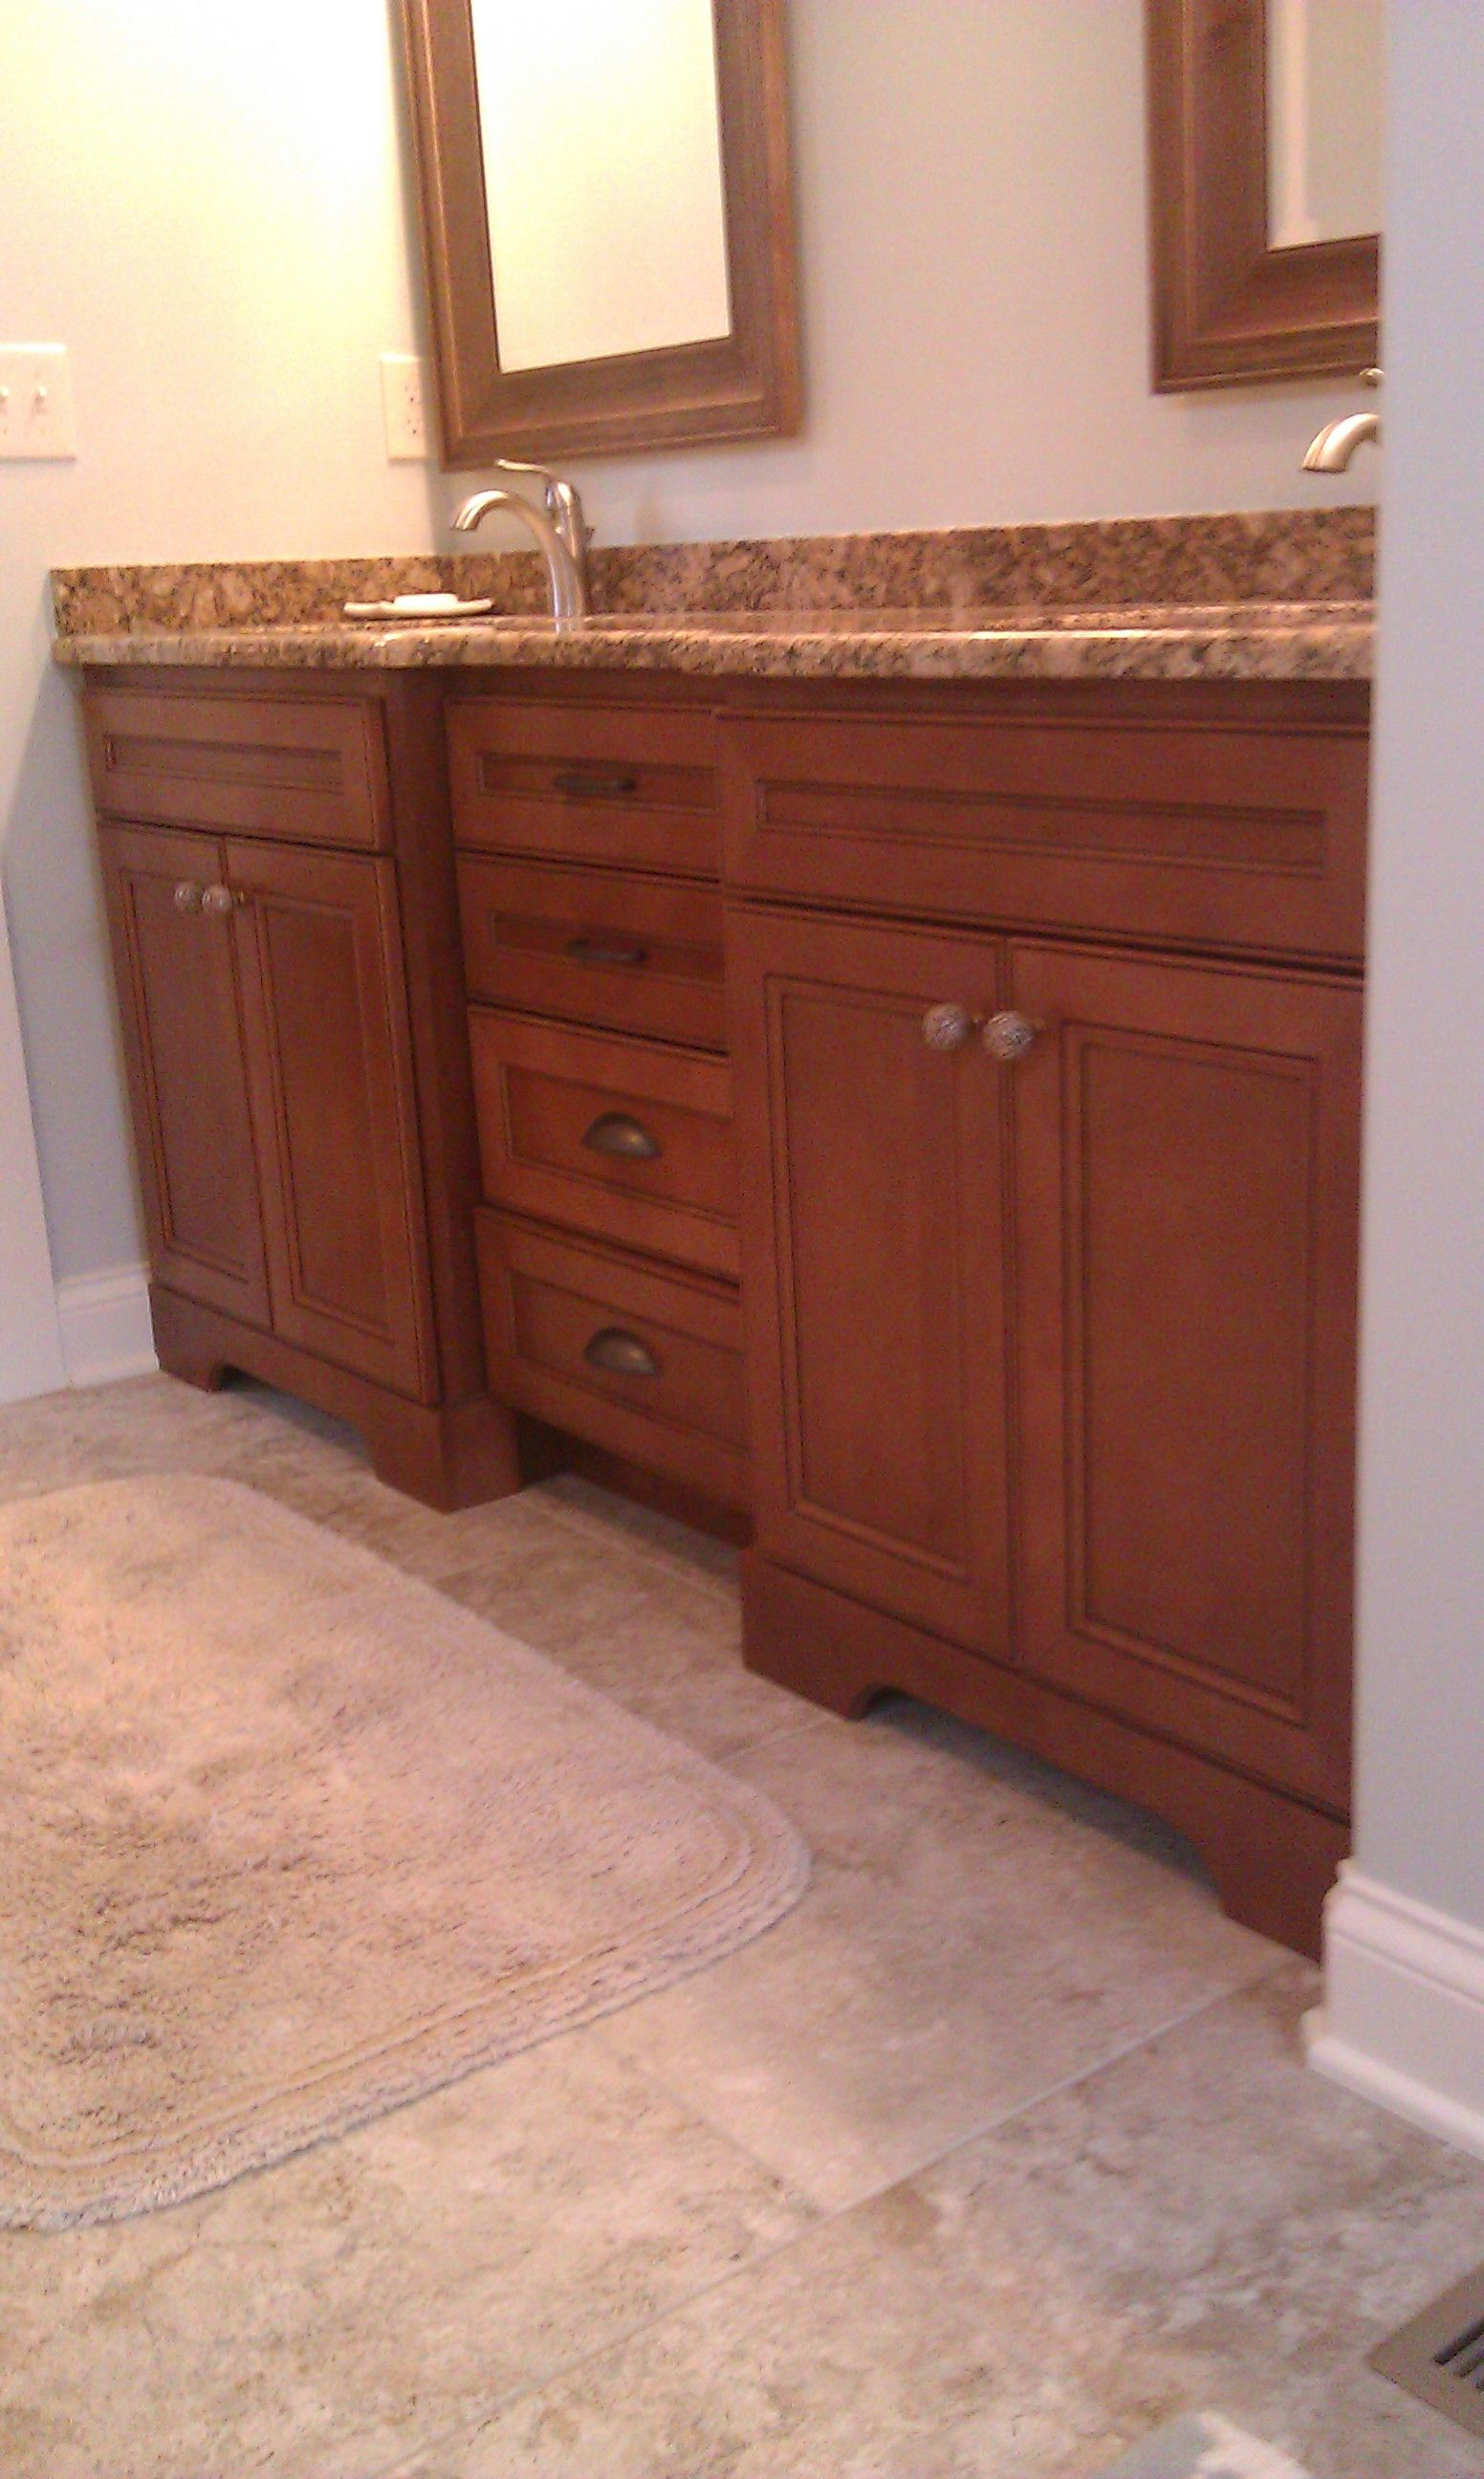 Homecrest Kitchen Cabinets Price List Master Bath Vanity Cabinet Homecrest Cabinetry Eastport